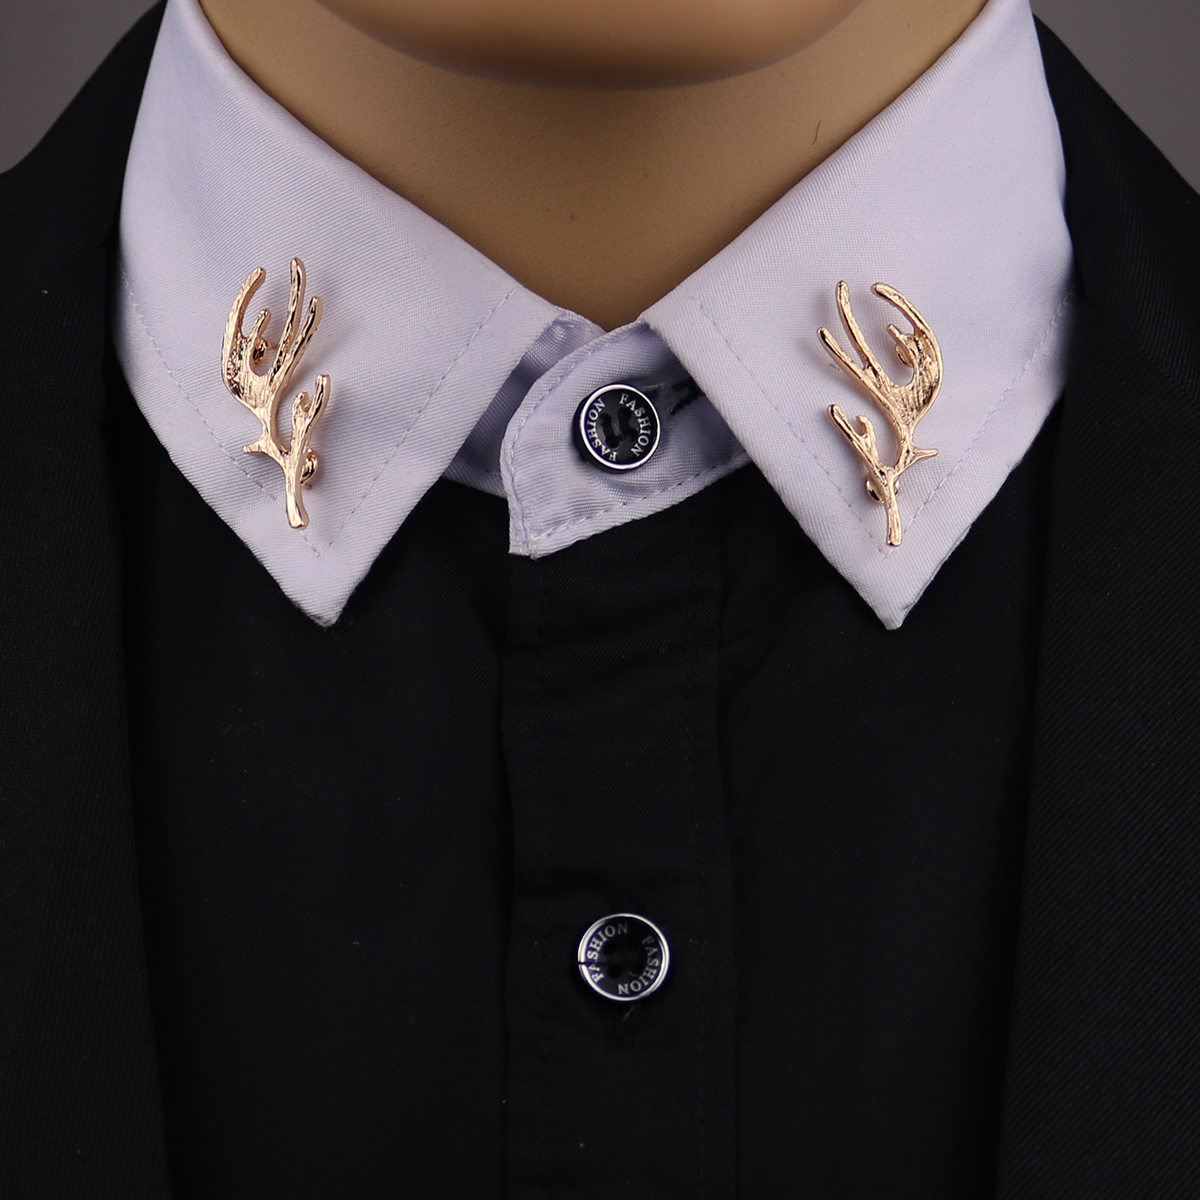 ae880369806 2016 New Time-limited Plated Trendy Animal Men Broche Retro Personality Elk  Antler Shirt Brooch